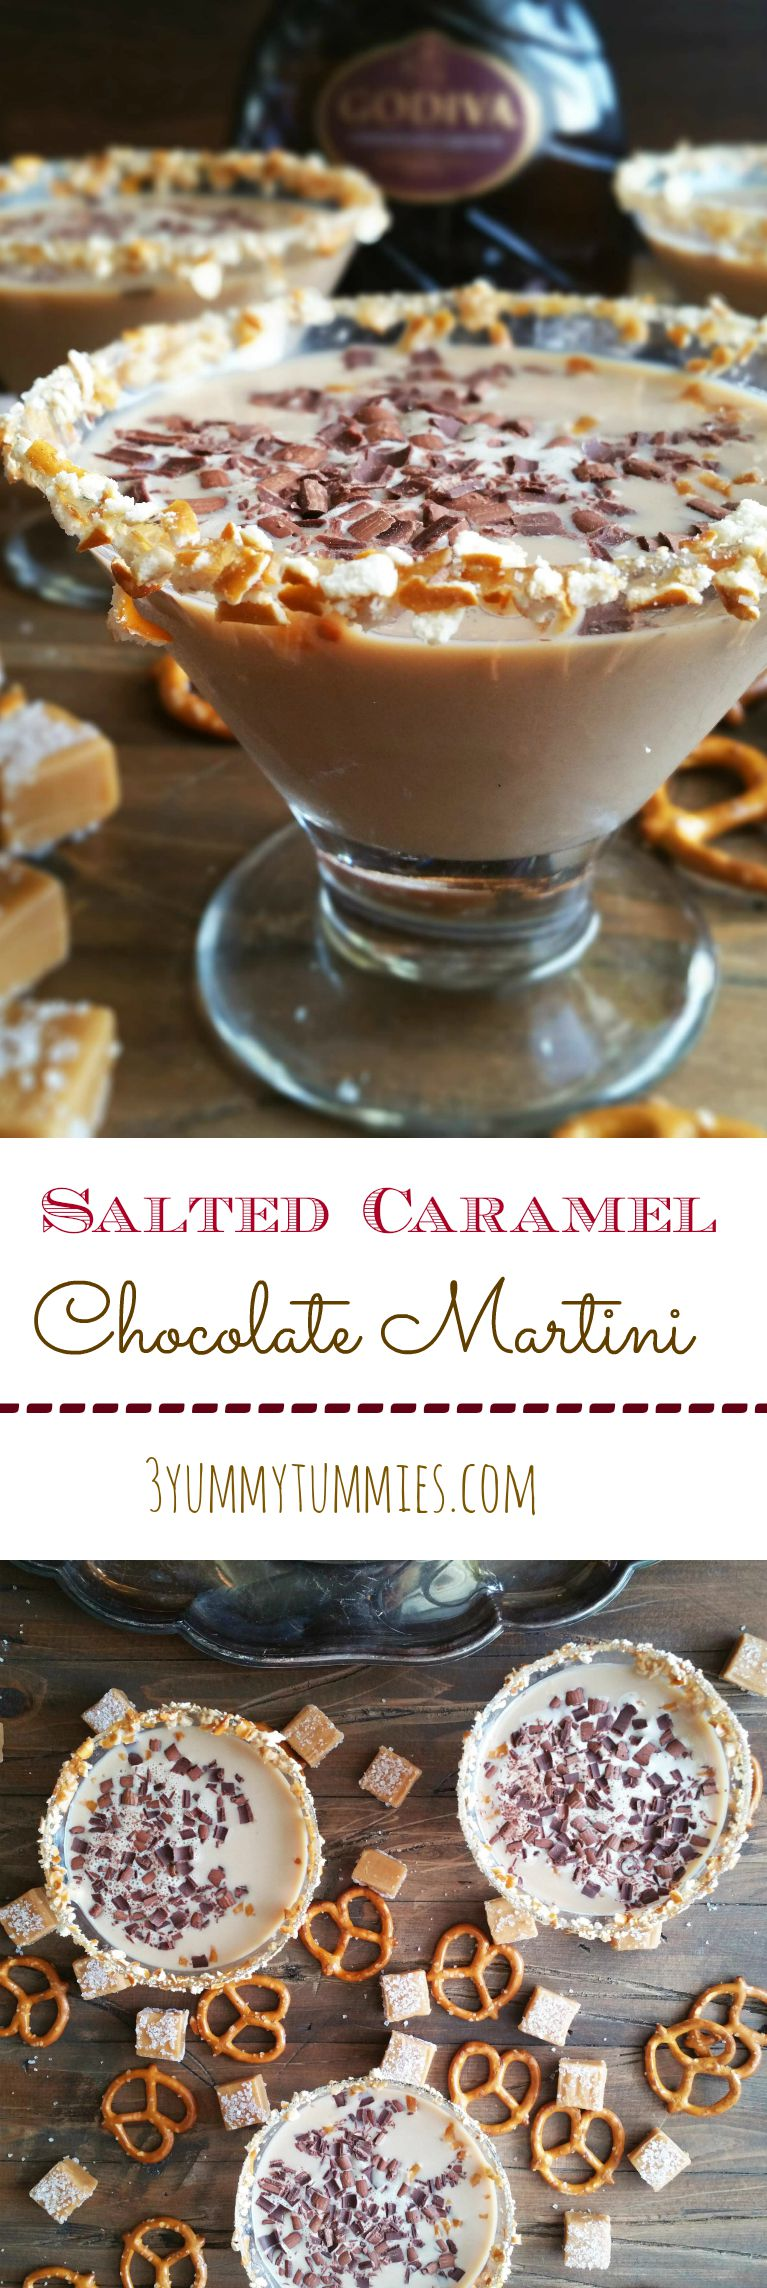 Salted Caramel Chocolate Martini 3 Yummy Tummies